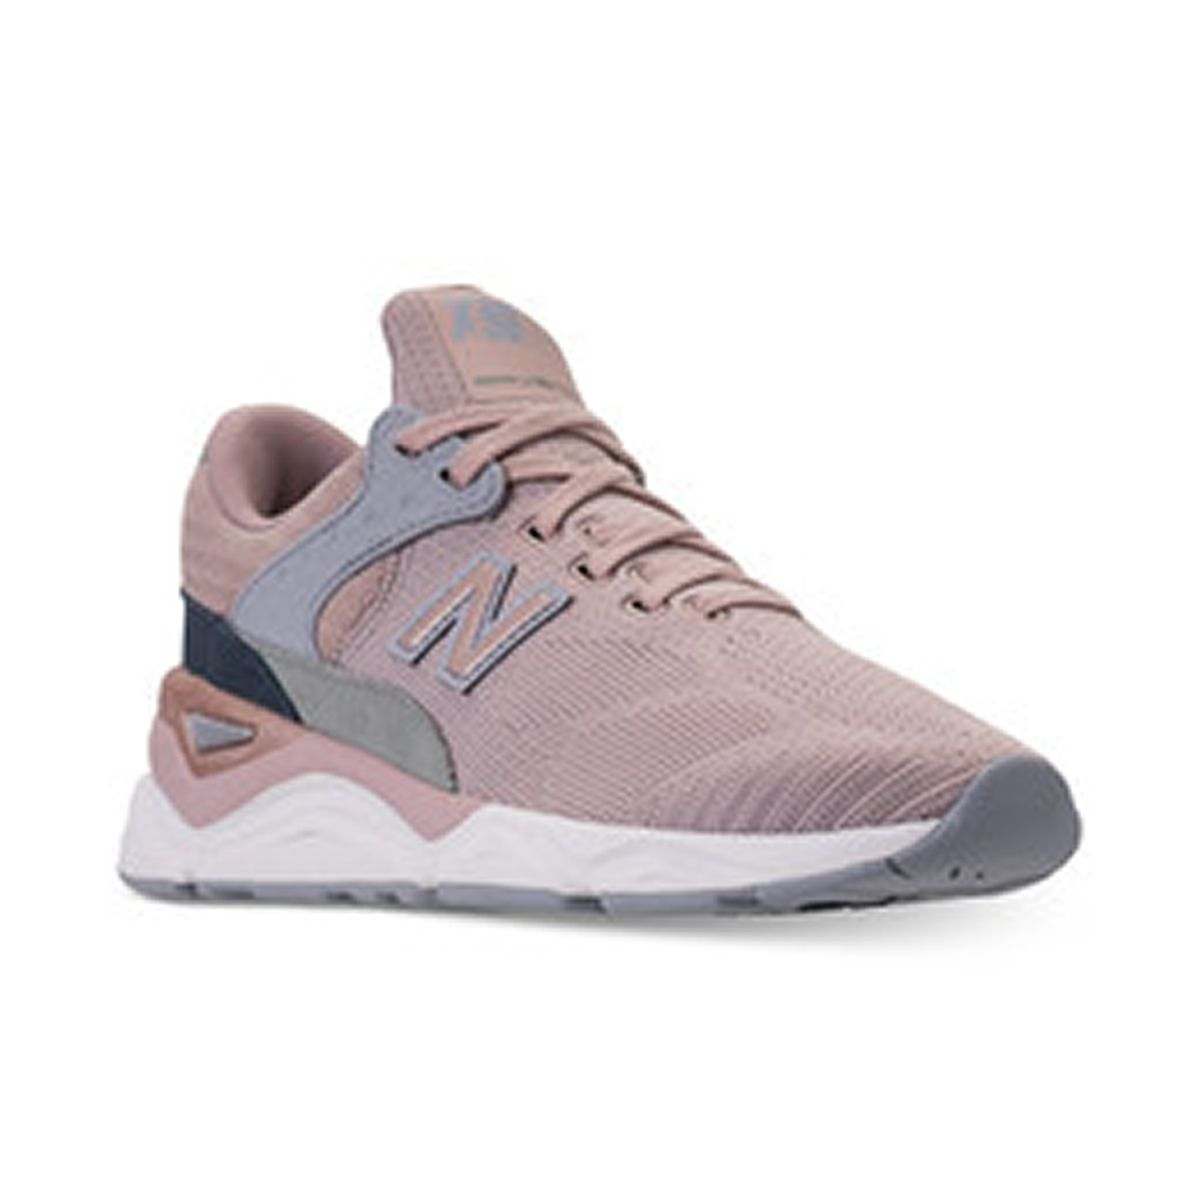 3be5d882a12 Shop by brand. Nike. Nike · Adidas. Adidas · New Balance